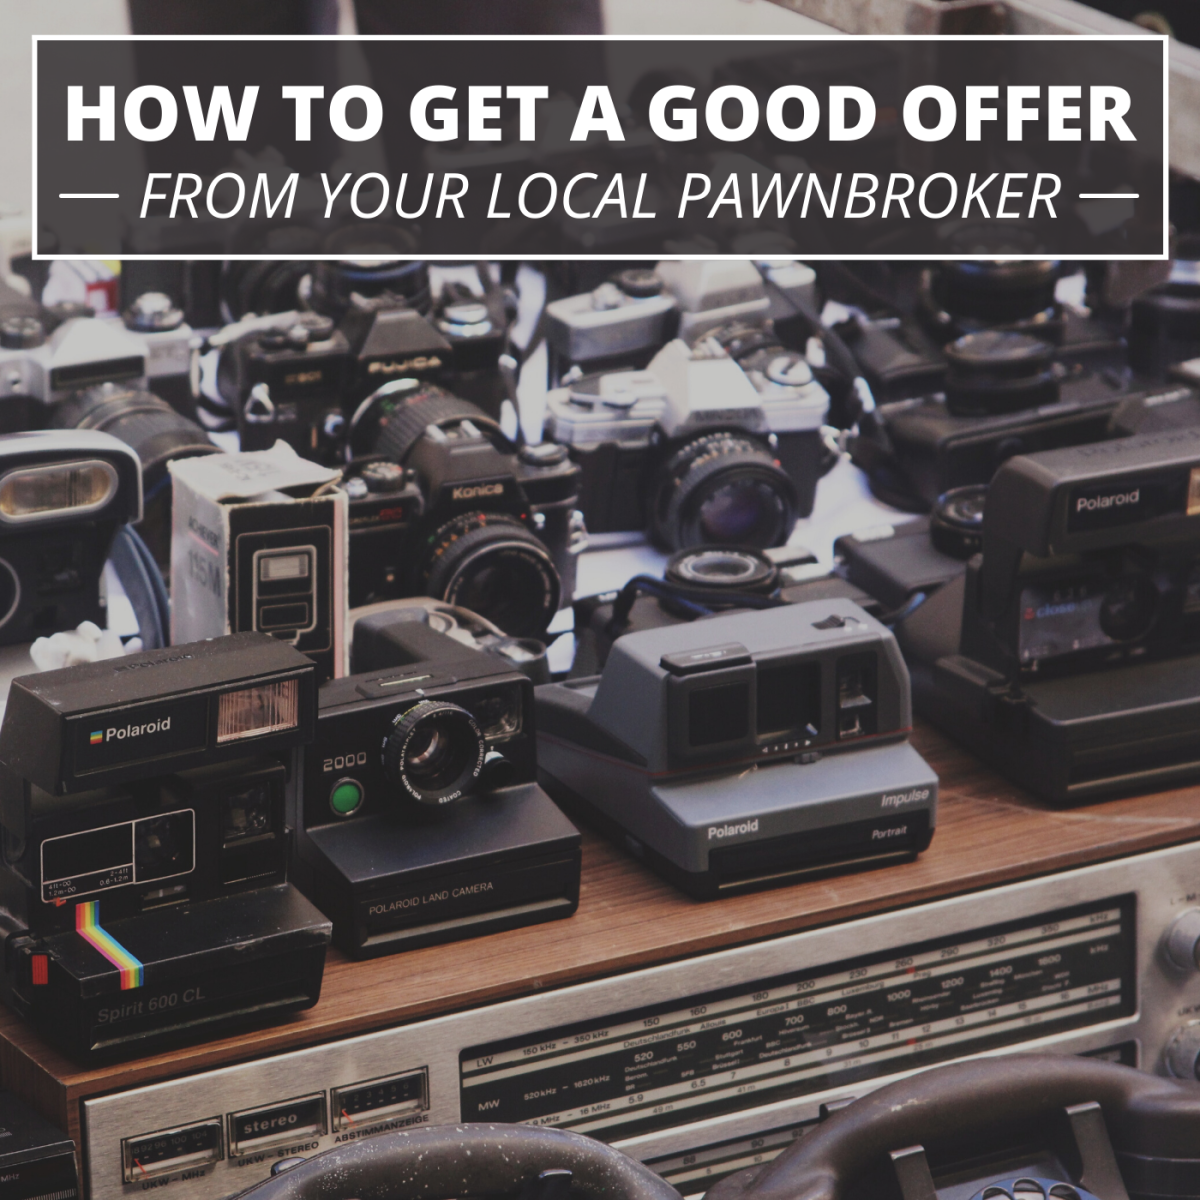 Want to get a good offer for your items at the pawn shop? I'm a shop owner, and these are my tips.